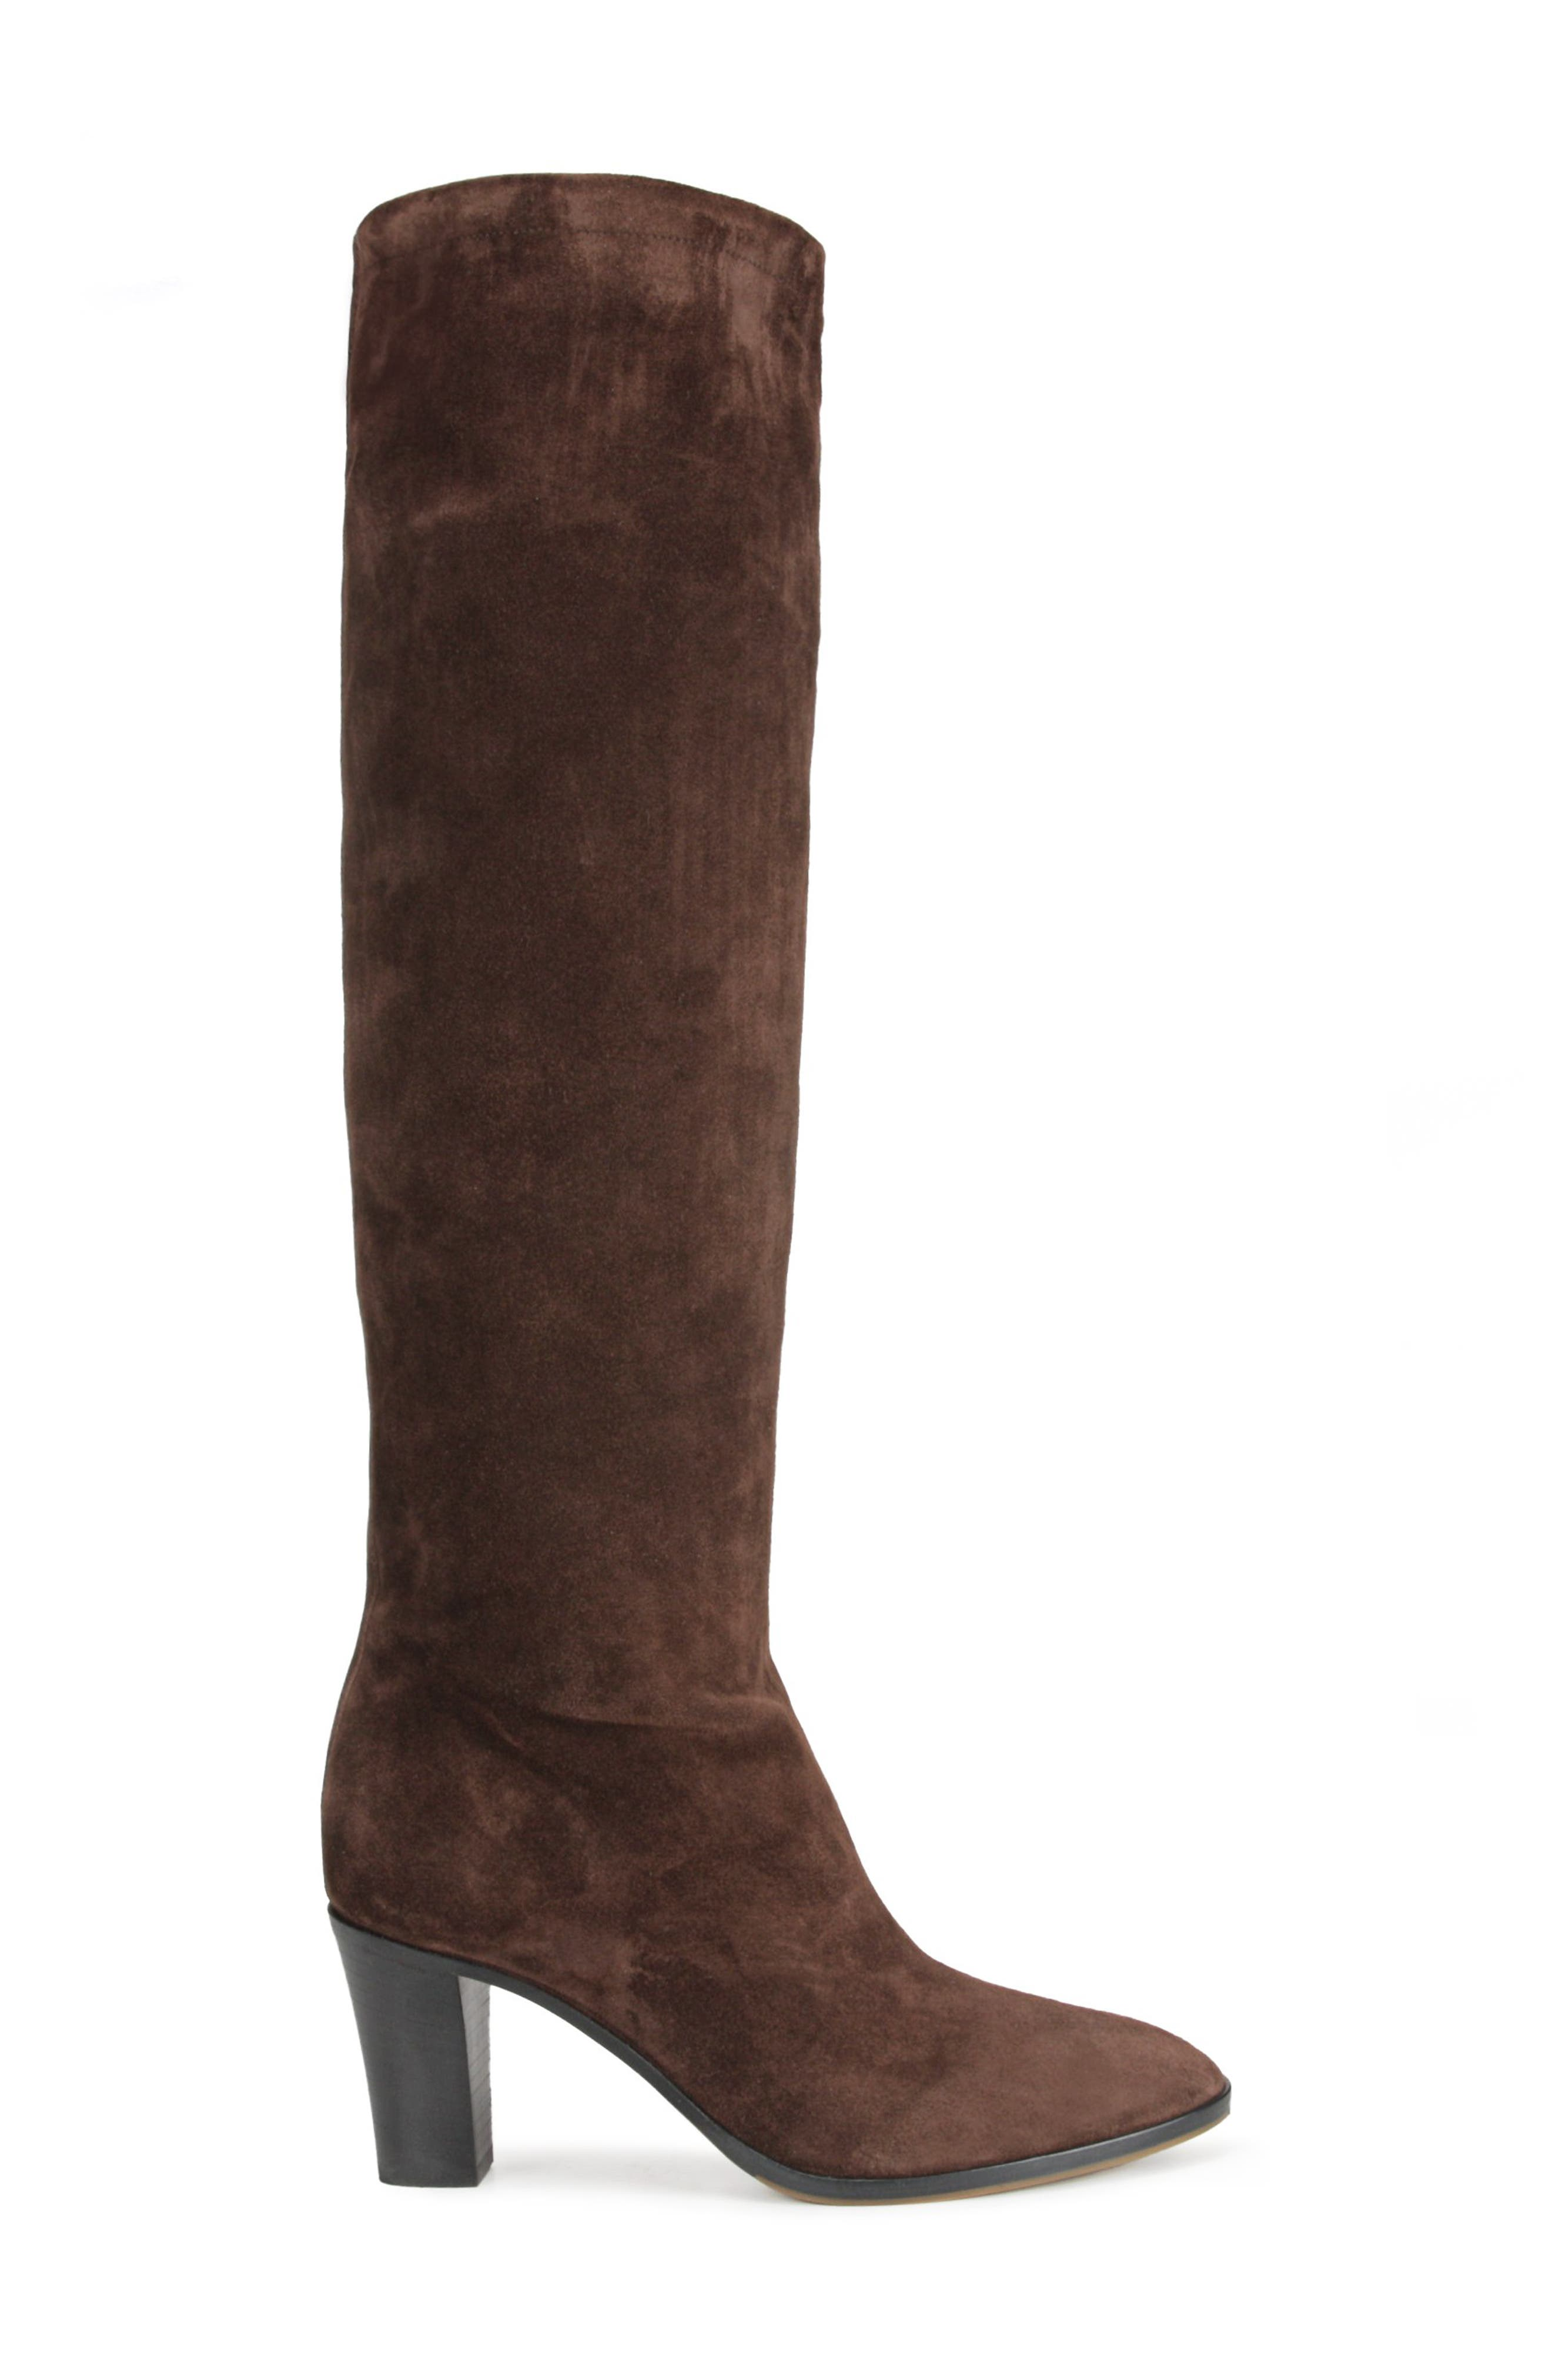 Casper Knee High Pull-On Boot,                             Alternate thumbnail 3, color,                             COTTO BROWN